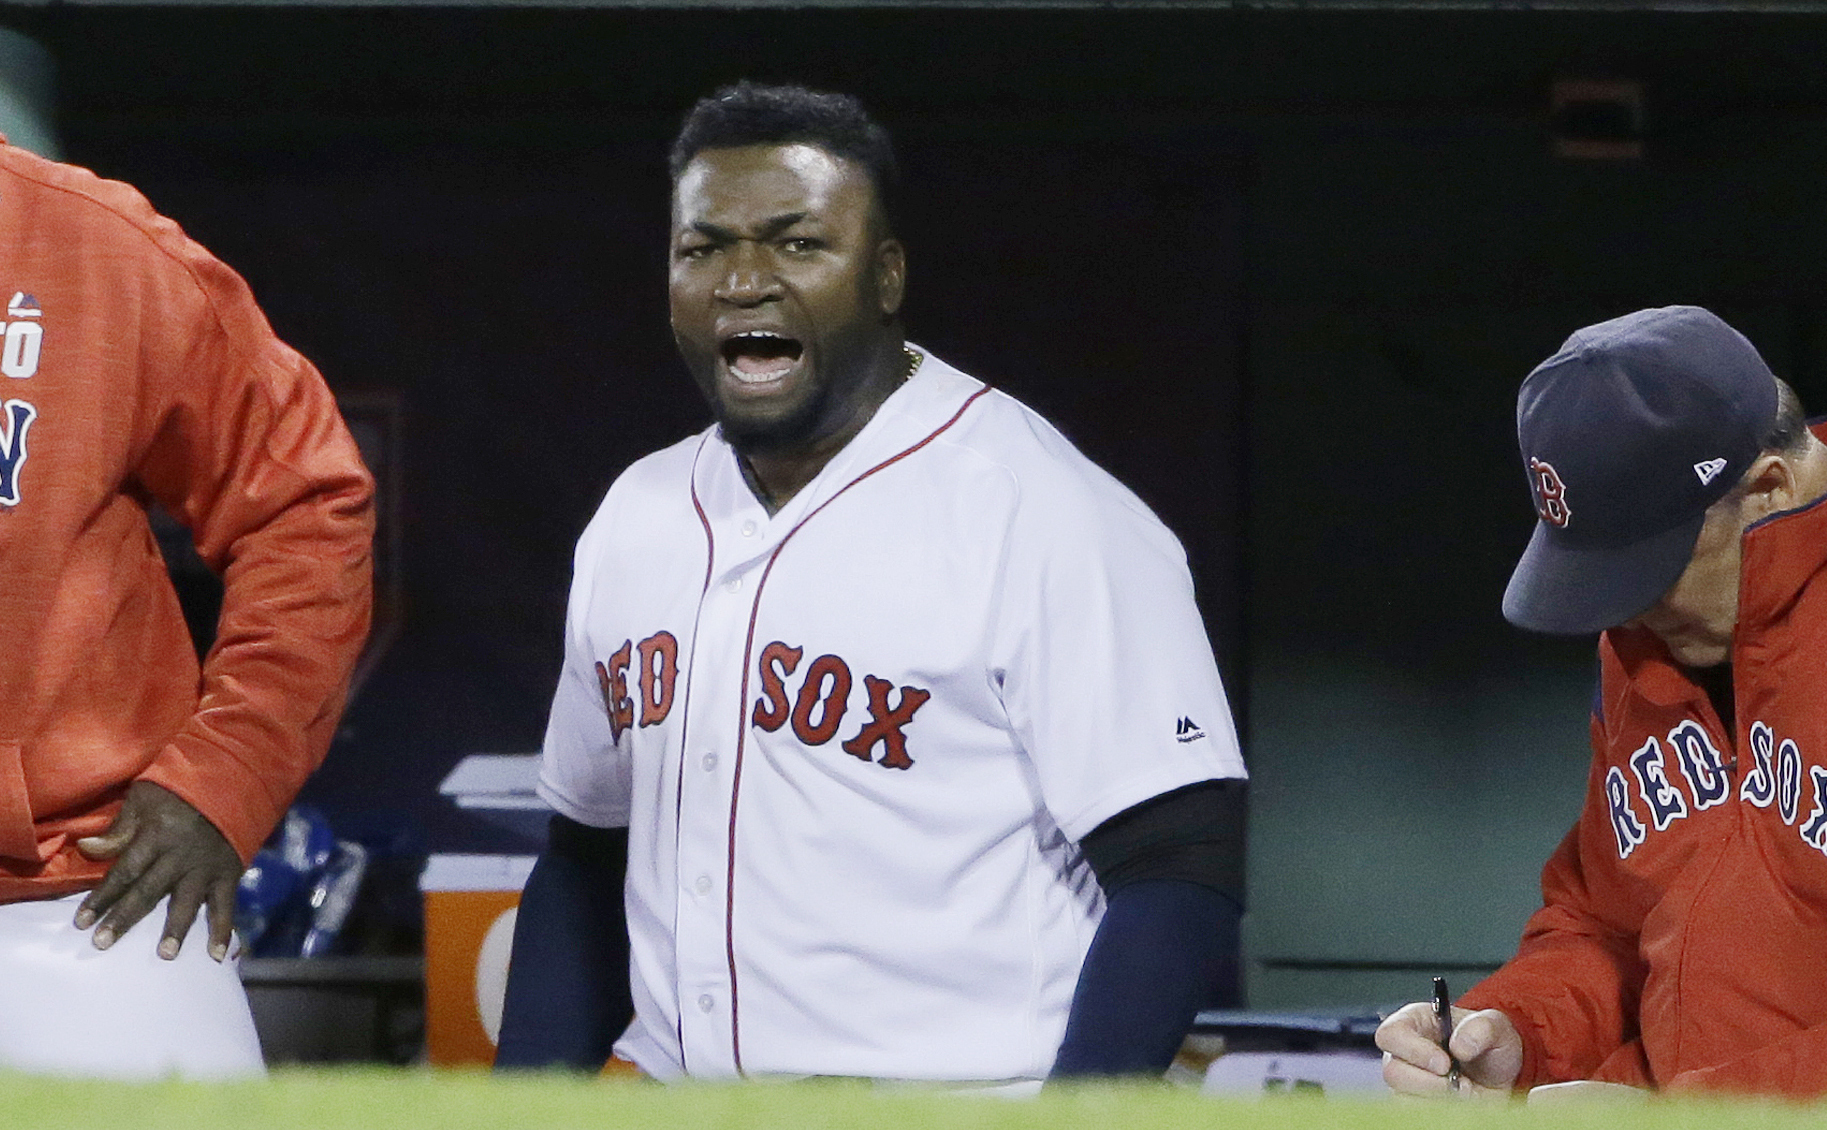 David_Ortiz_Shot_Baseball_37521-159532.jpg23766210